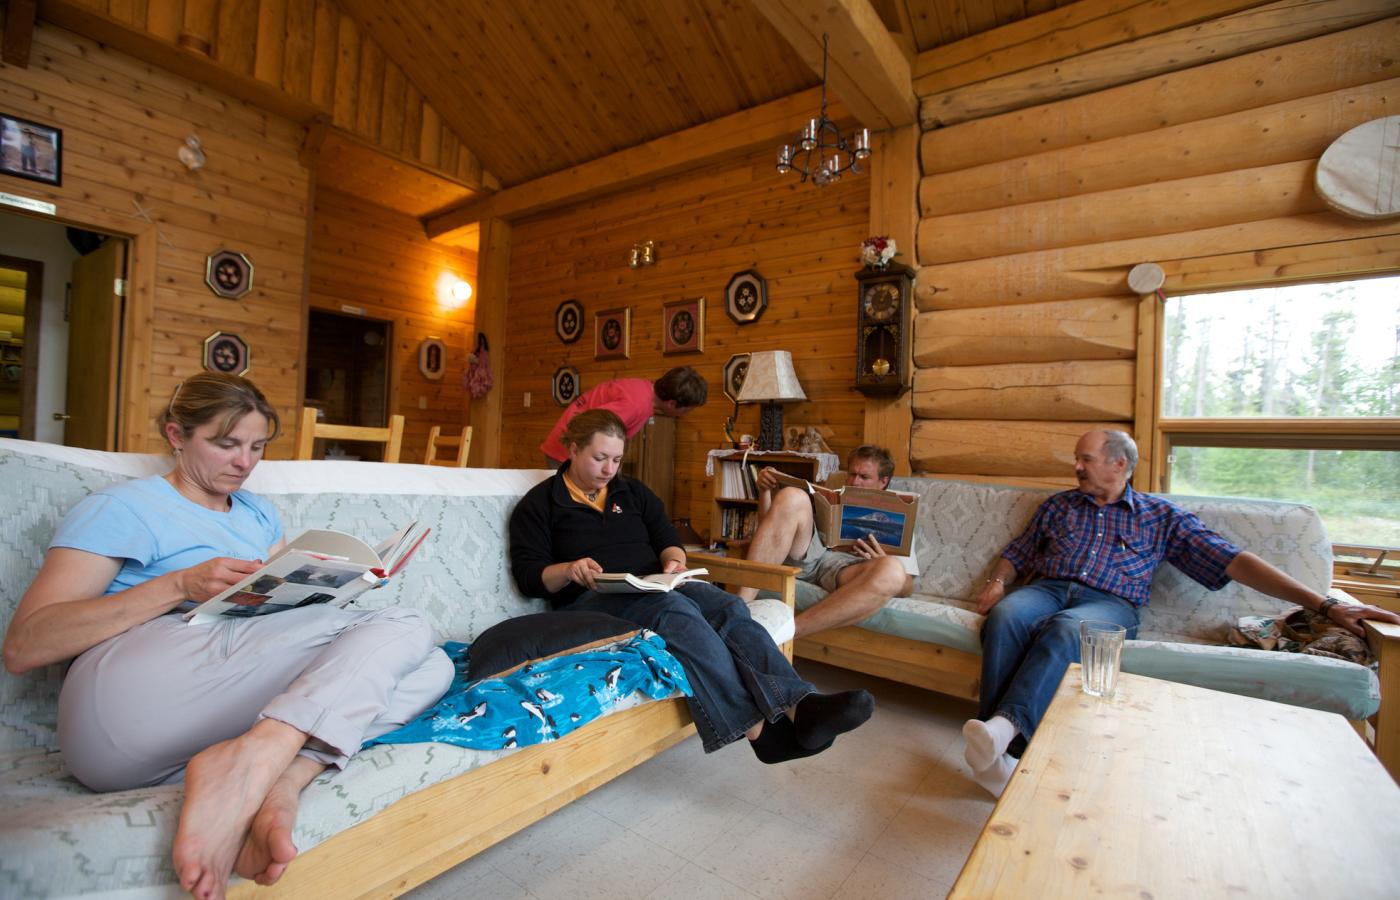 Rent a cozy cabin in the Northwest Territories